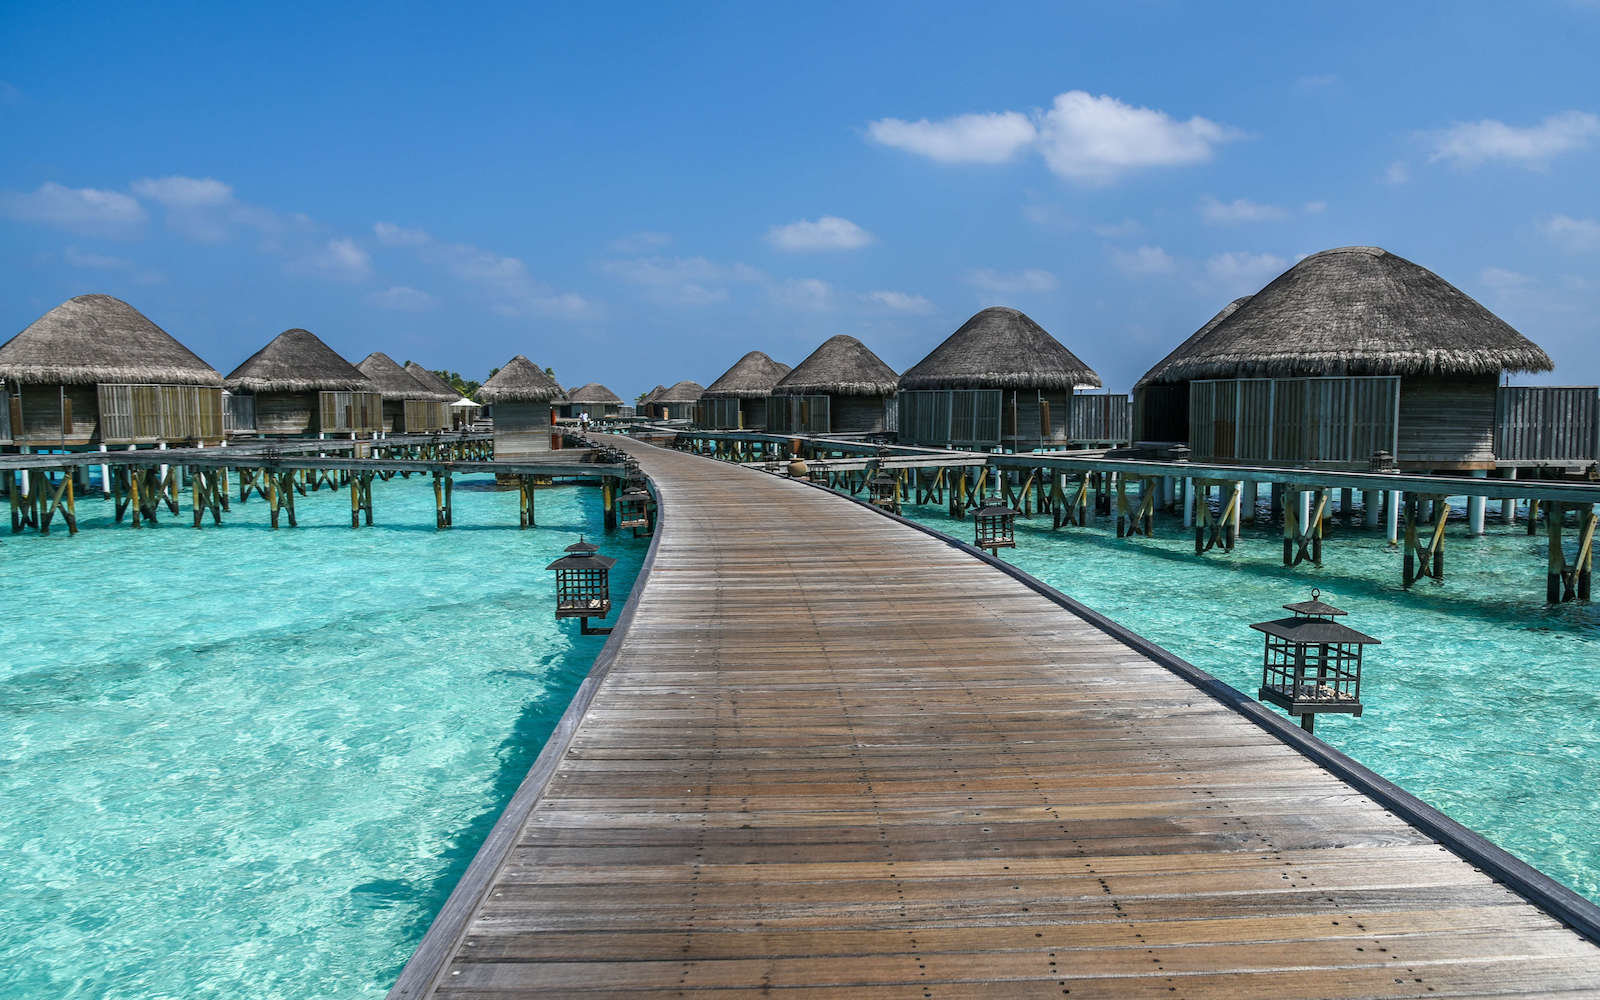 Insanely cheap flights to the Maldives are on sale for $526 round-trip